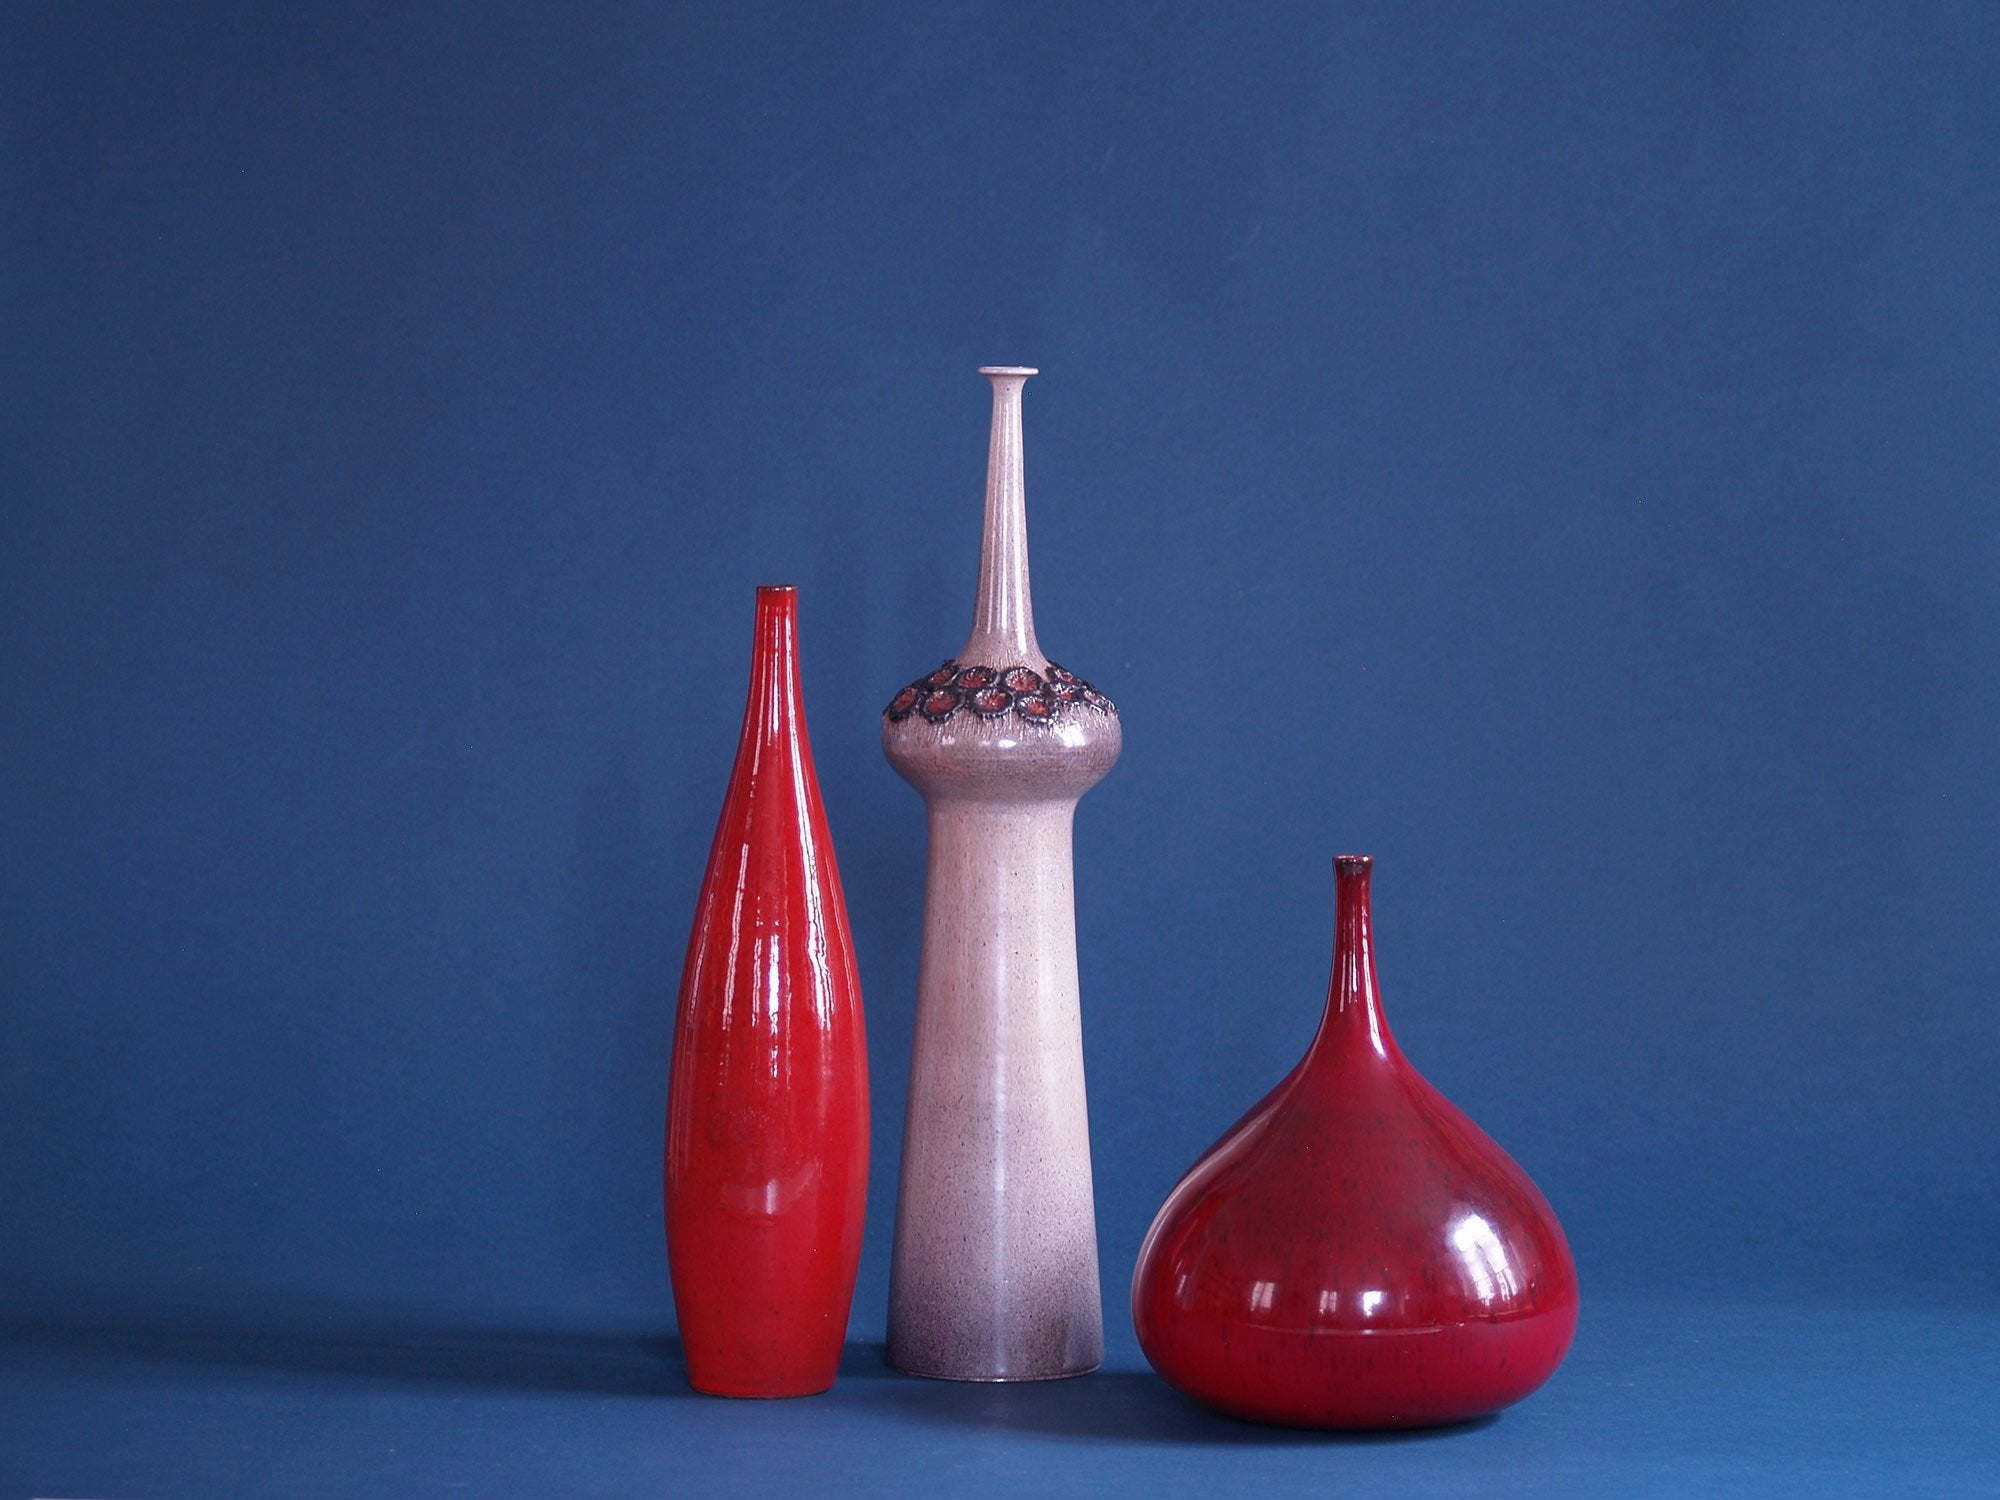 Grand vase bouteille renflé par Perignem, Belgique (vers 1965)..Outstanding bottle-shaped Vase by Perignem, Belgium (circa 1965)